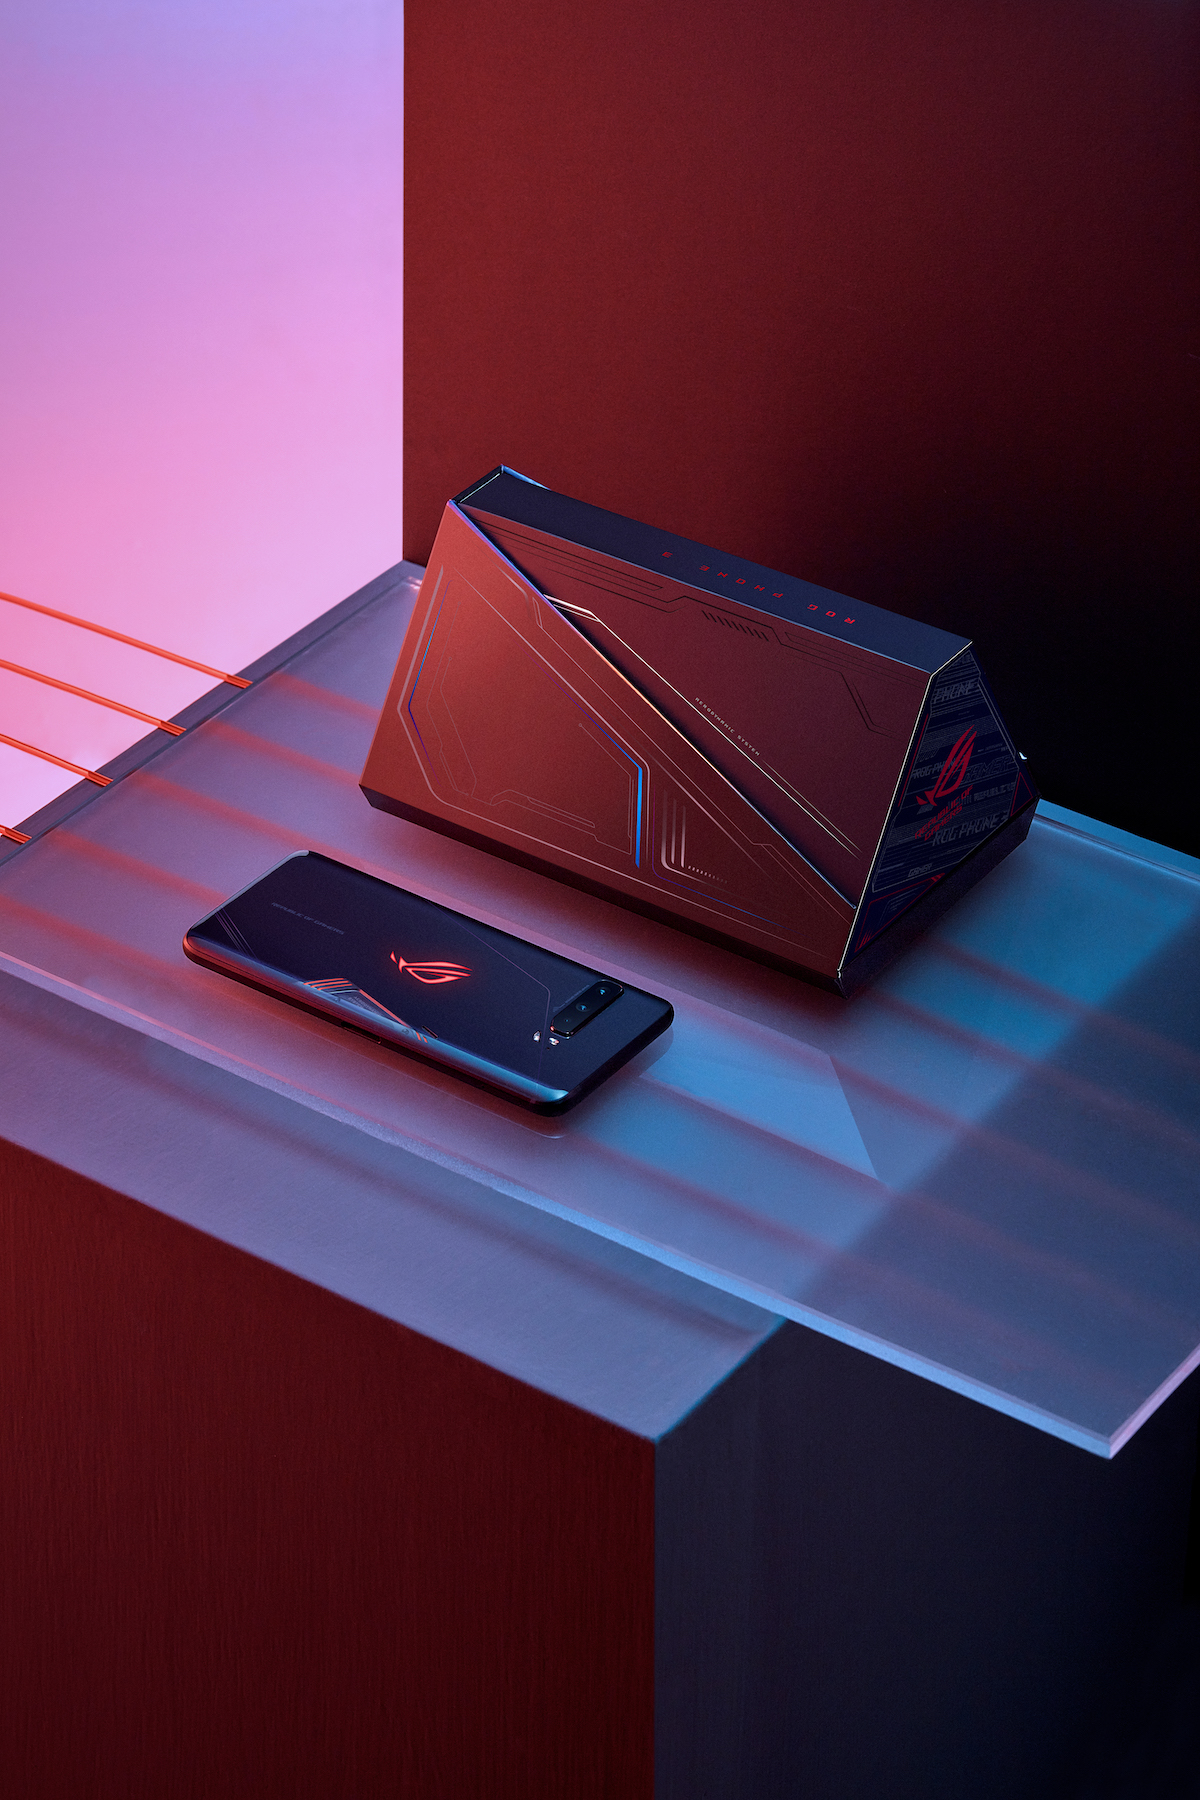 ASUS Republic of Gamers annuncia ROG Phone 3